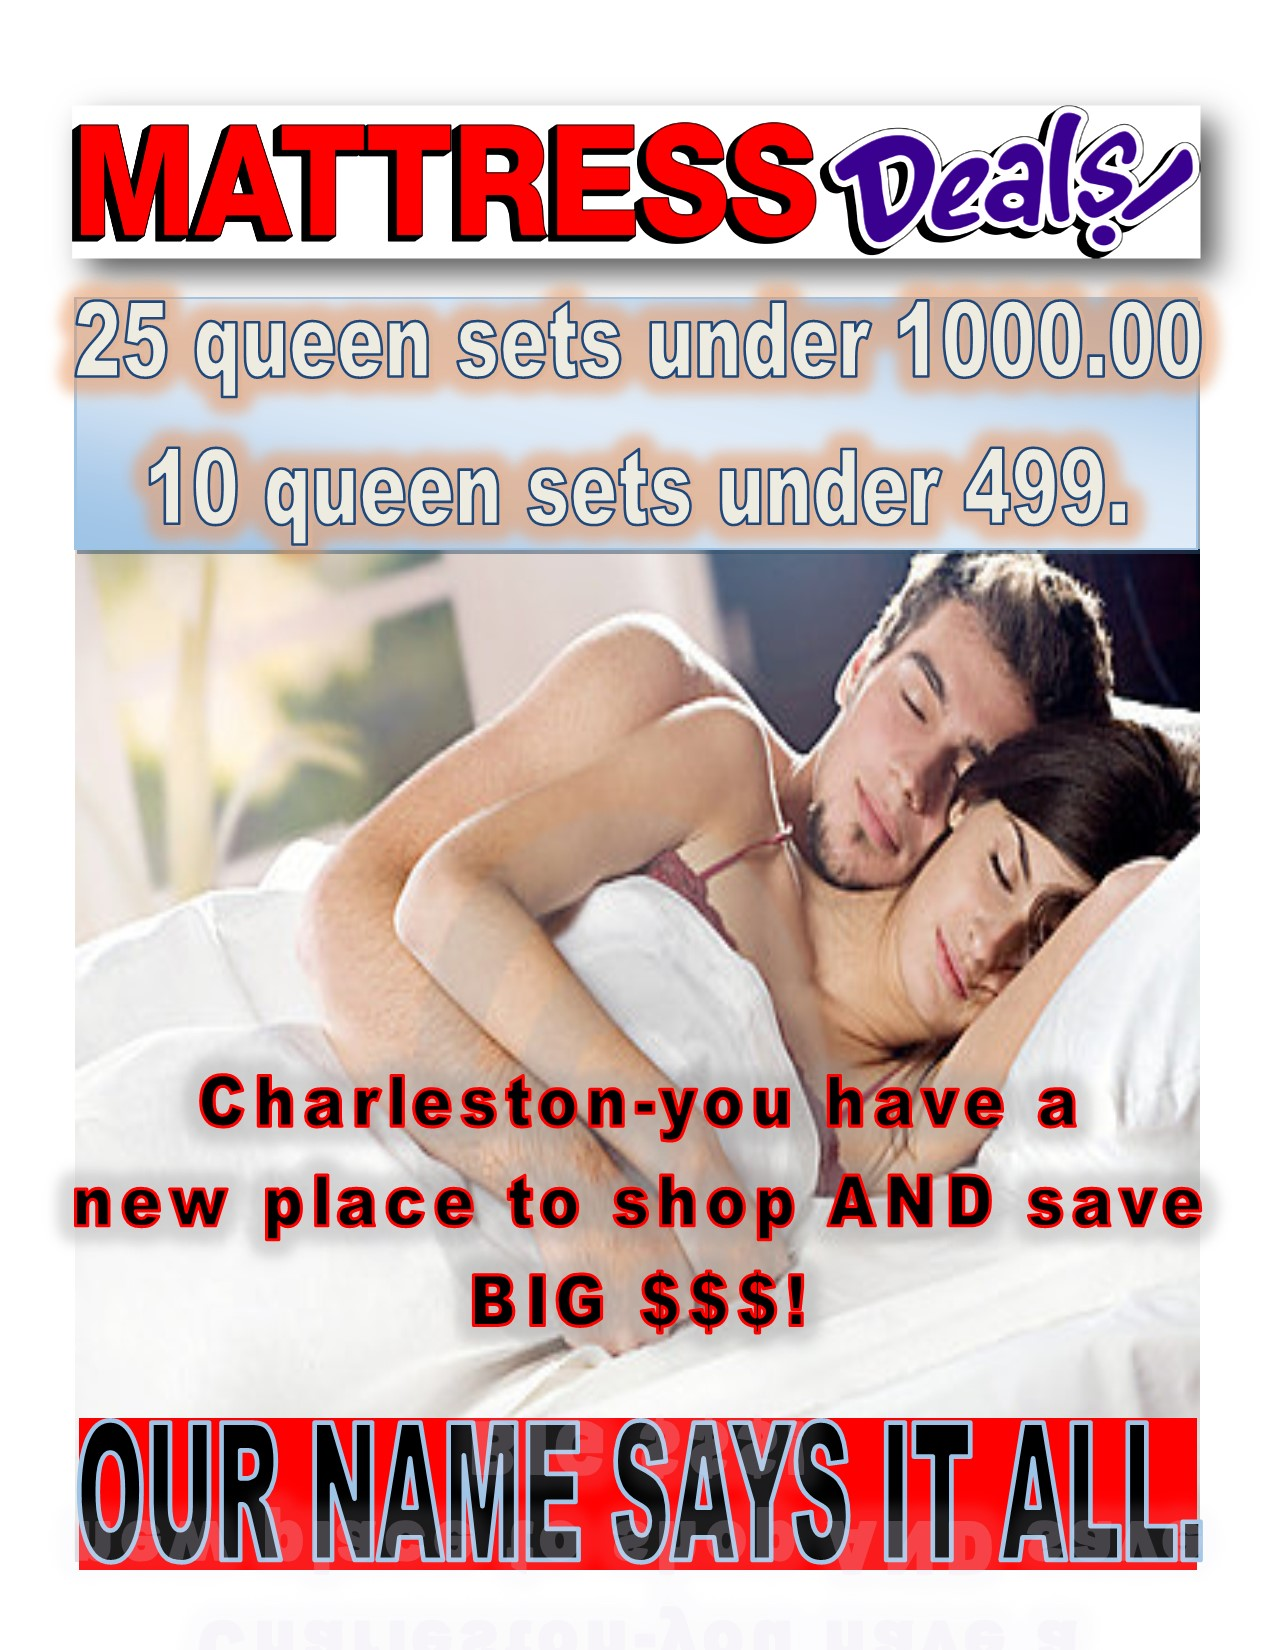 Mattress Deals image 36